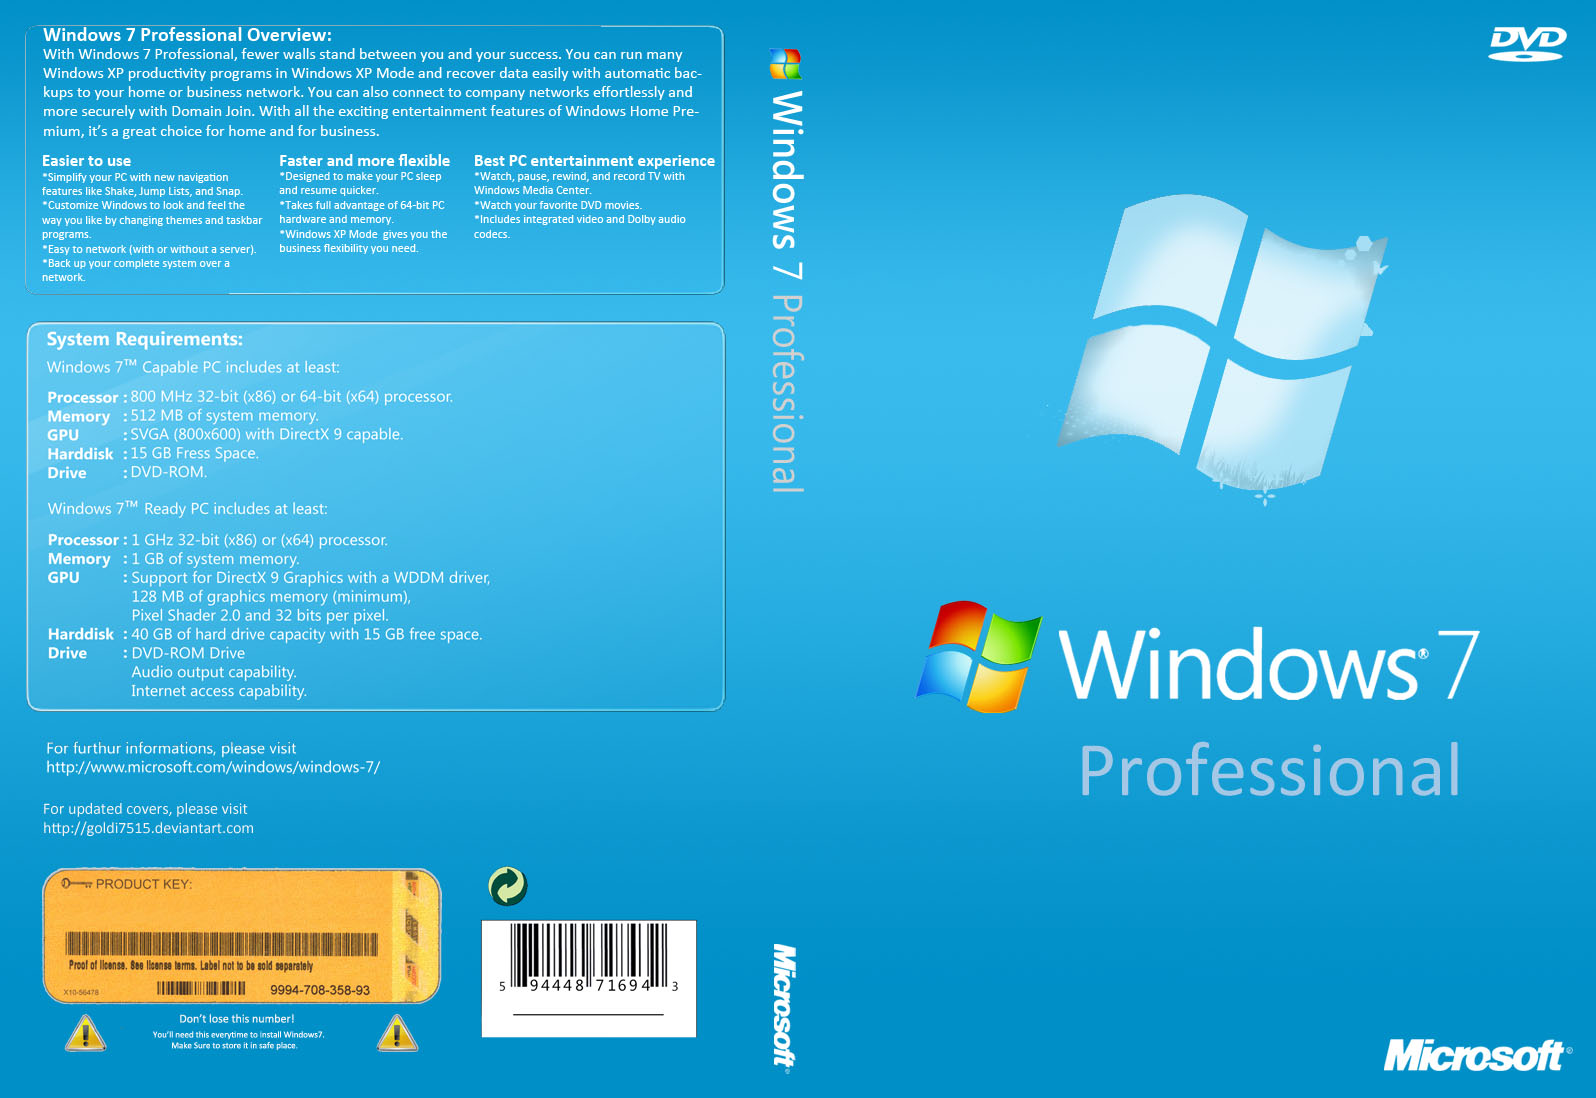 Download Windows 7 PRO ESD x86/x64 PT-BR Windows7 Professional cover